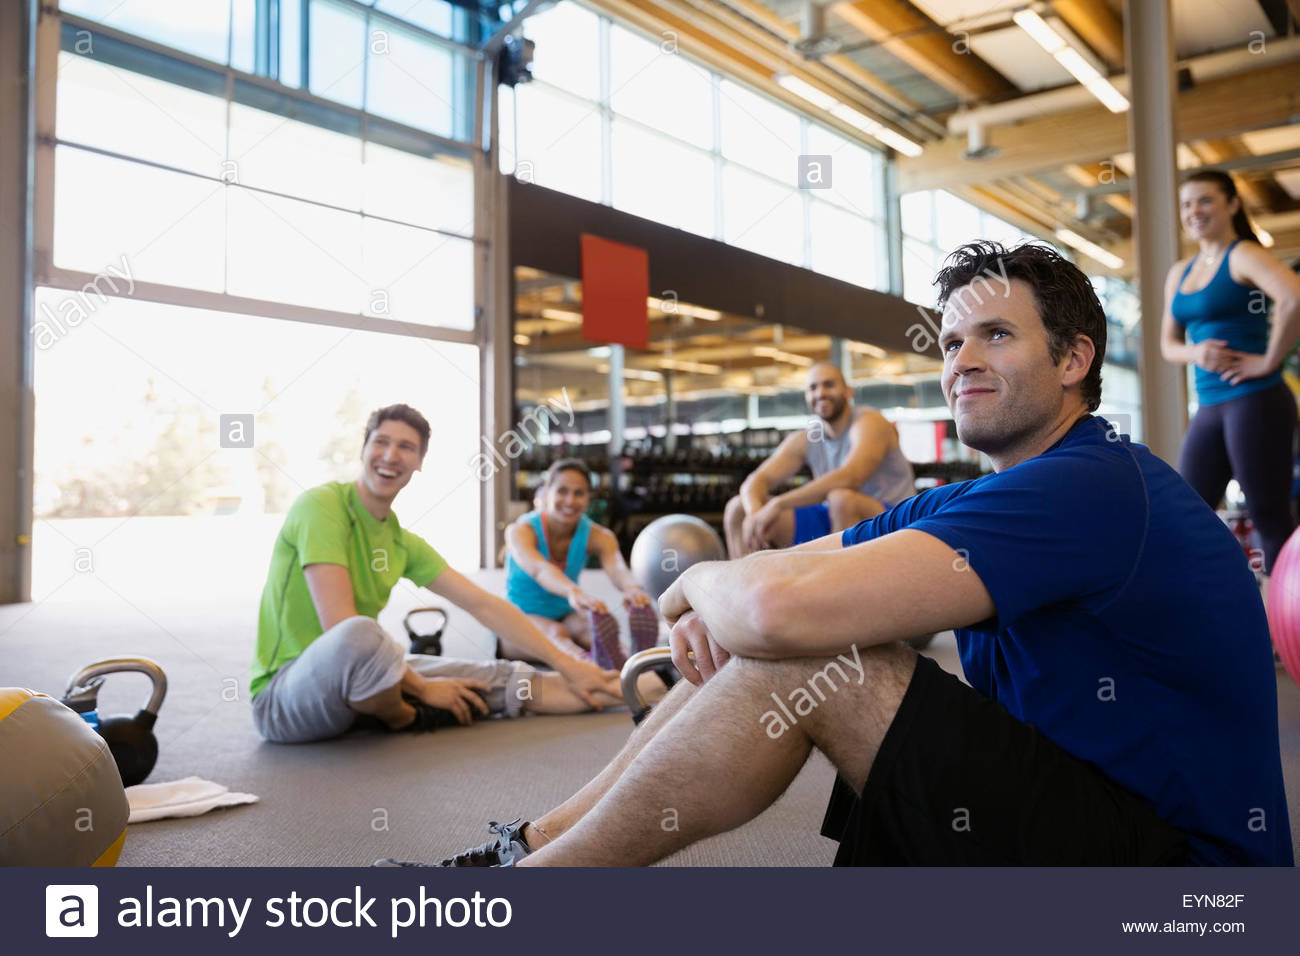 Exercise class stretching in gym - Stock Image